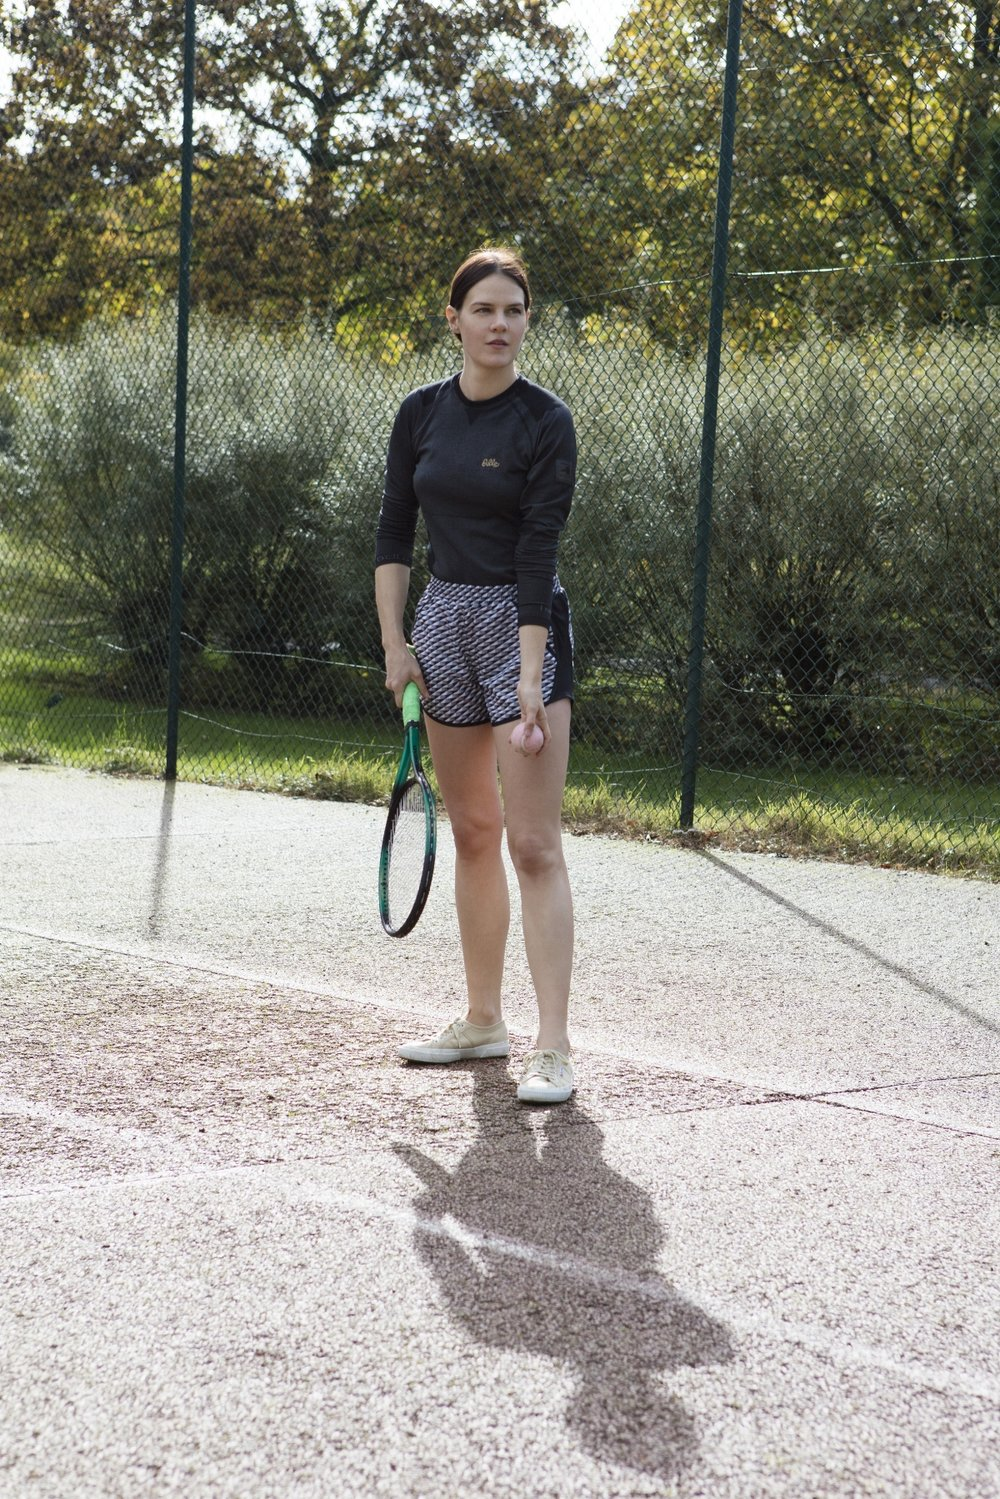 Top: Odlo. Shorts: Under Armour. Shoes: Superga. All Images by Corinne Stoll.